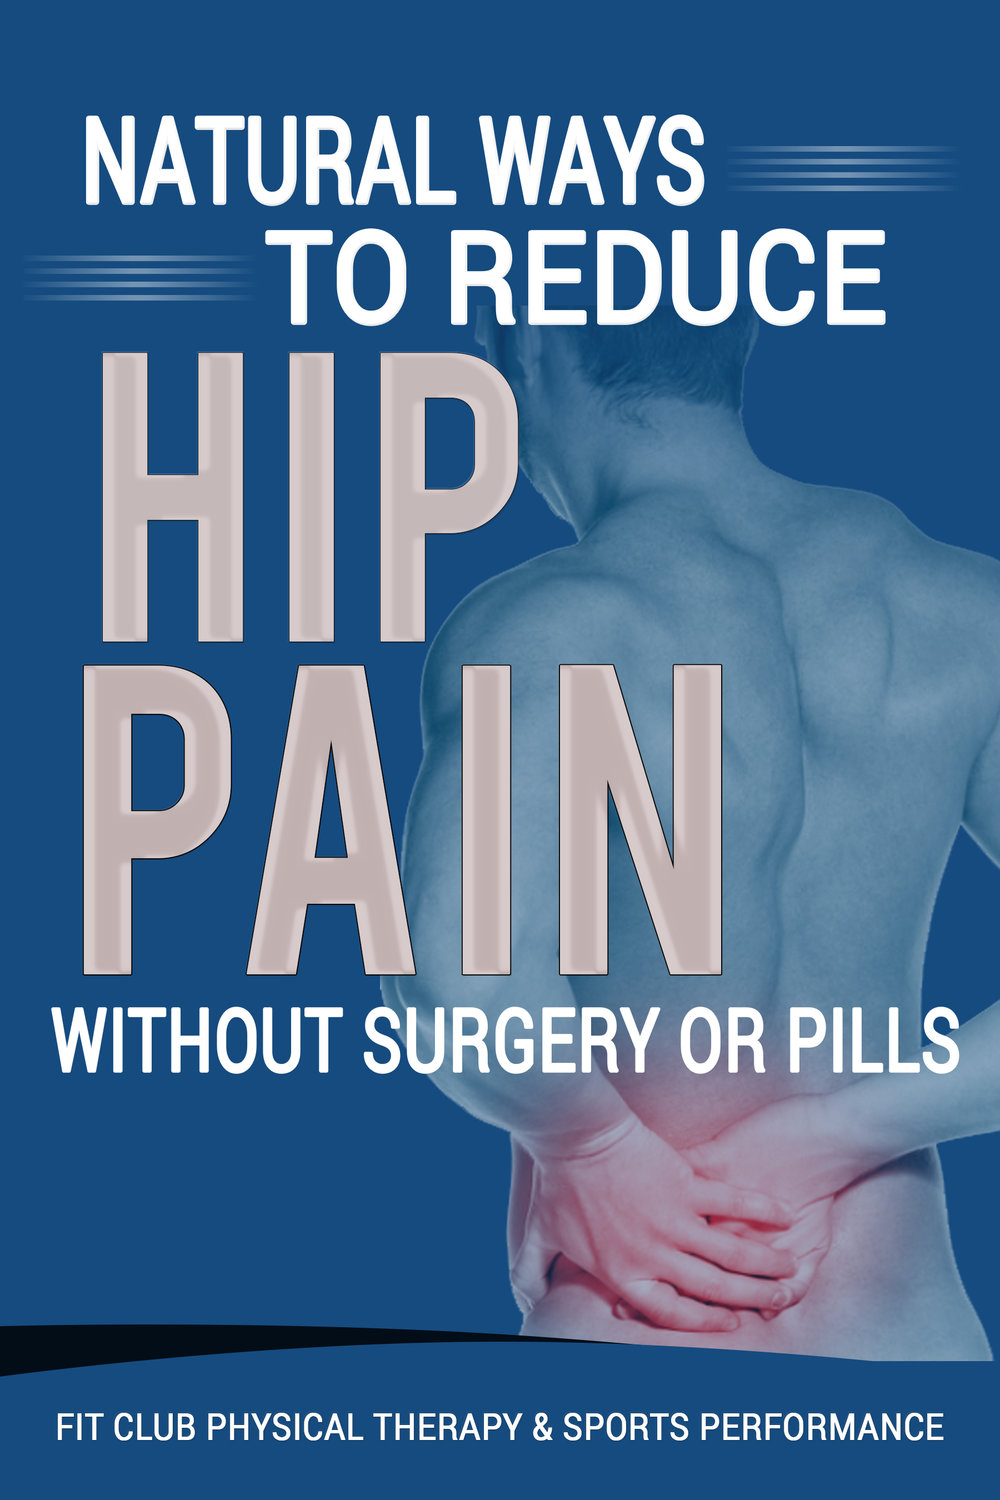 Free Hip Pain Report - Click the image to receive your free report now!